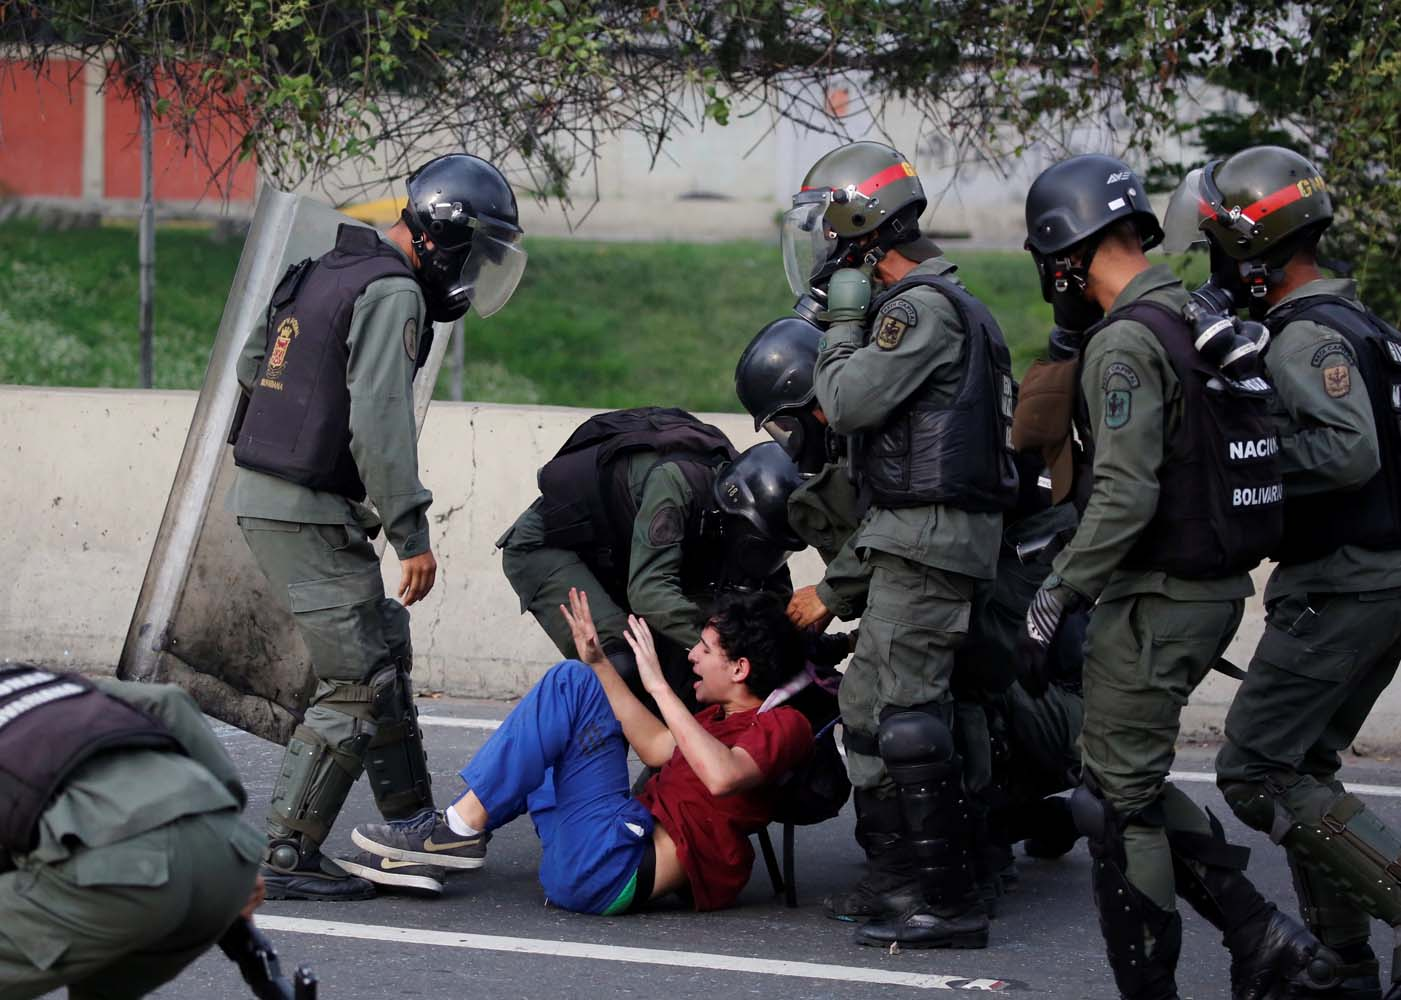 An opposition supporter is detained by riot police during a rally against President Nicolas Maduro in Caracas, Venezuela, May 8, 2017. REUTERS/Carlos Garcia Rawlins